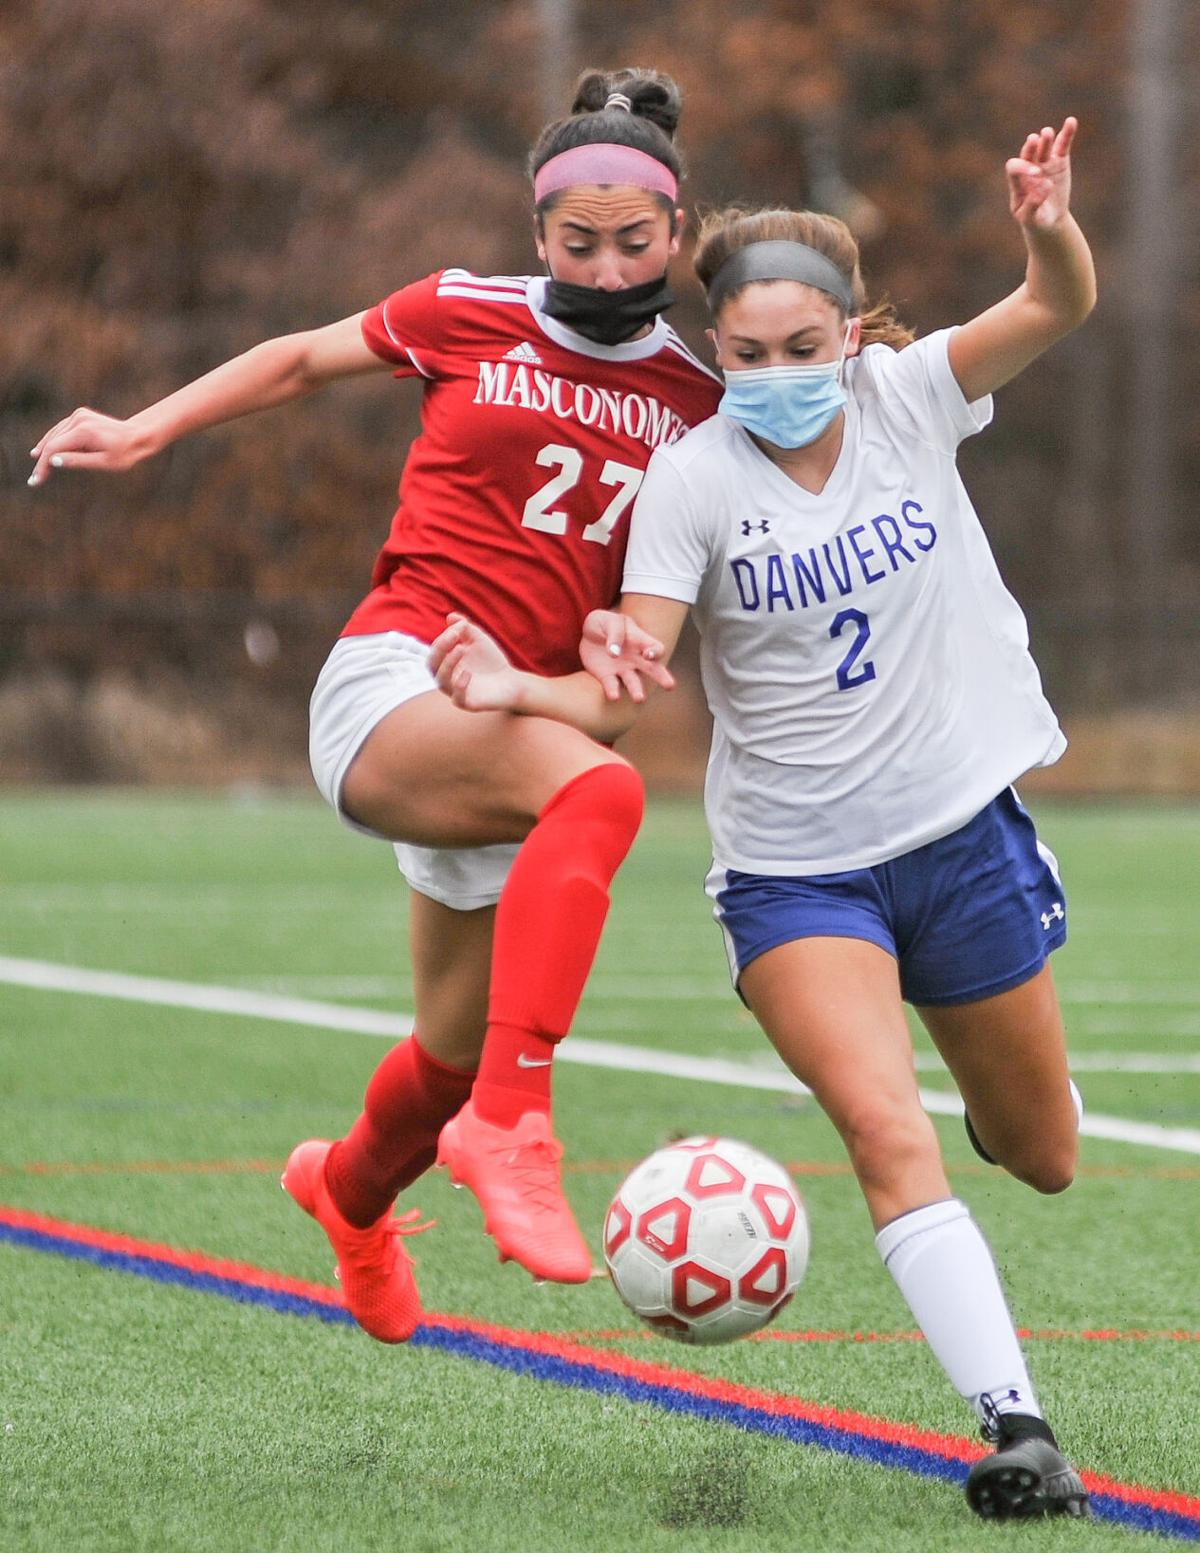 Girls soccer game of the year: unbeatens Danvers and Masconomet